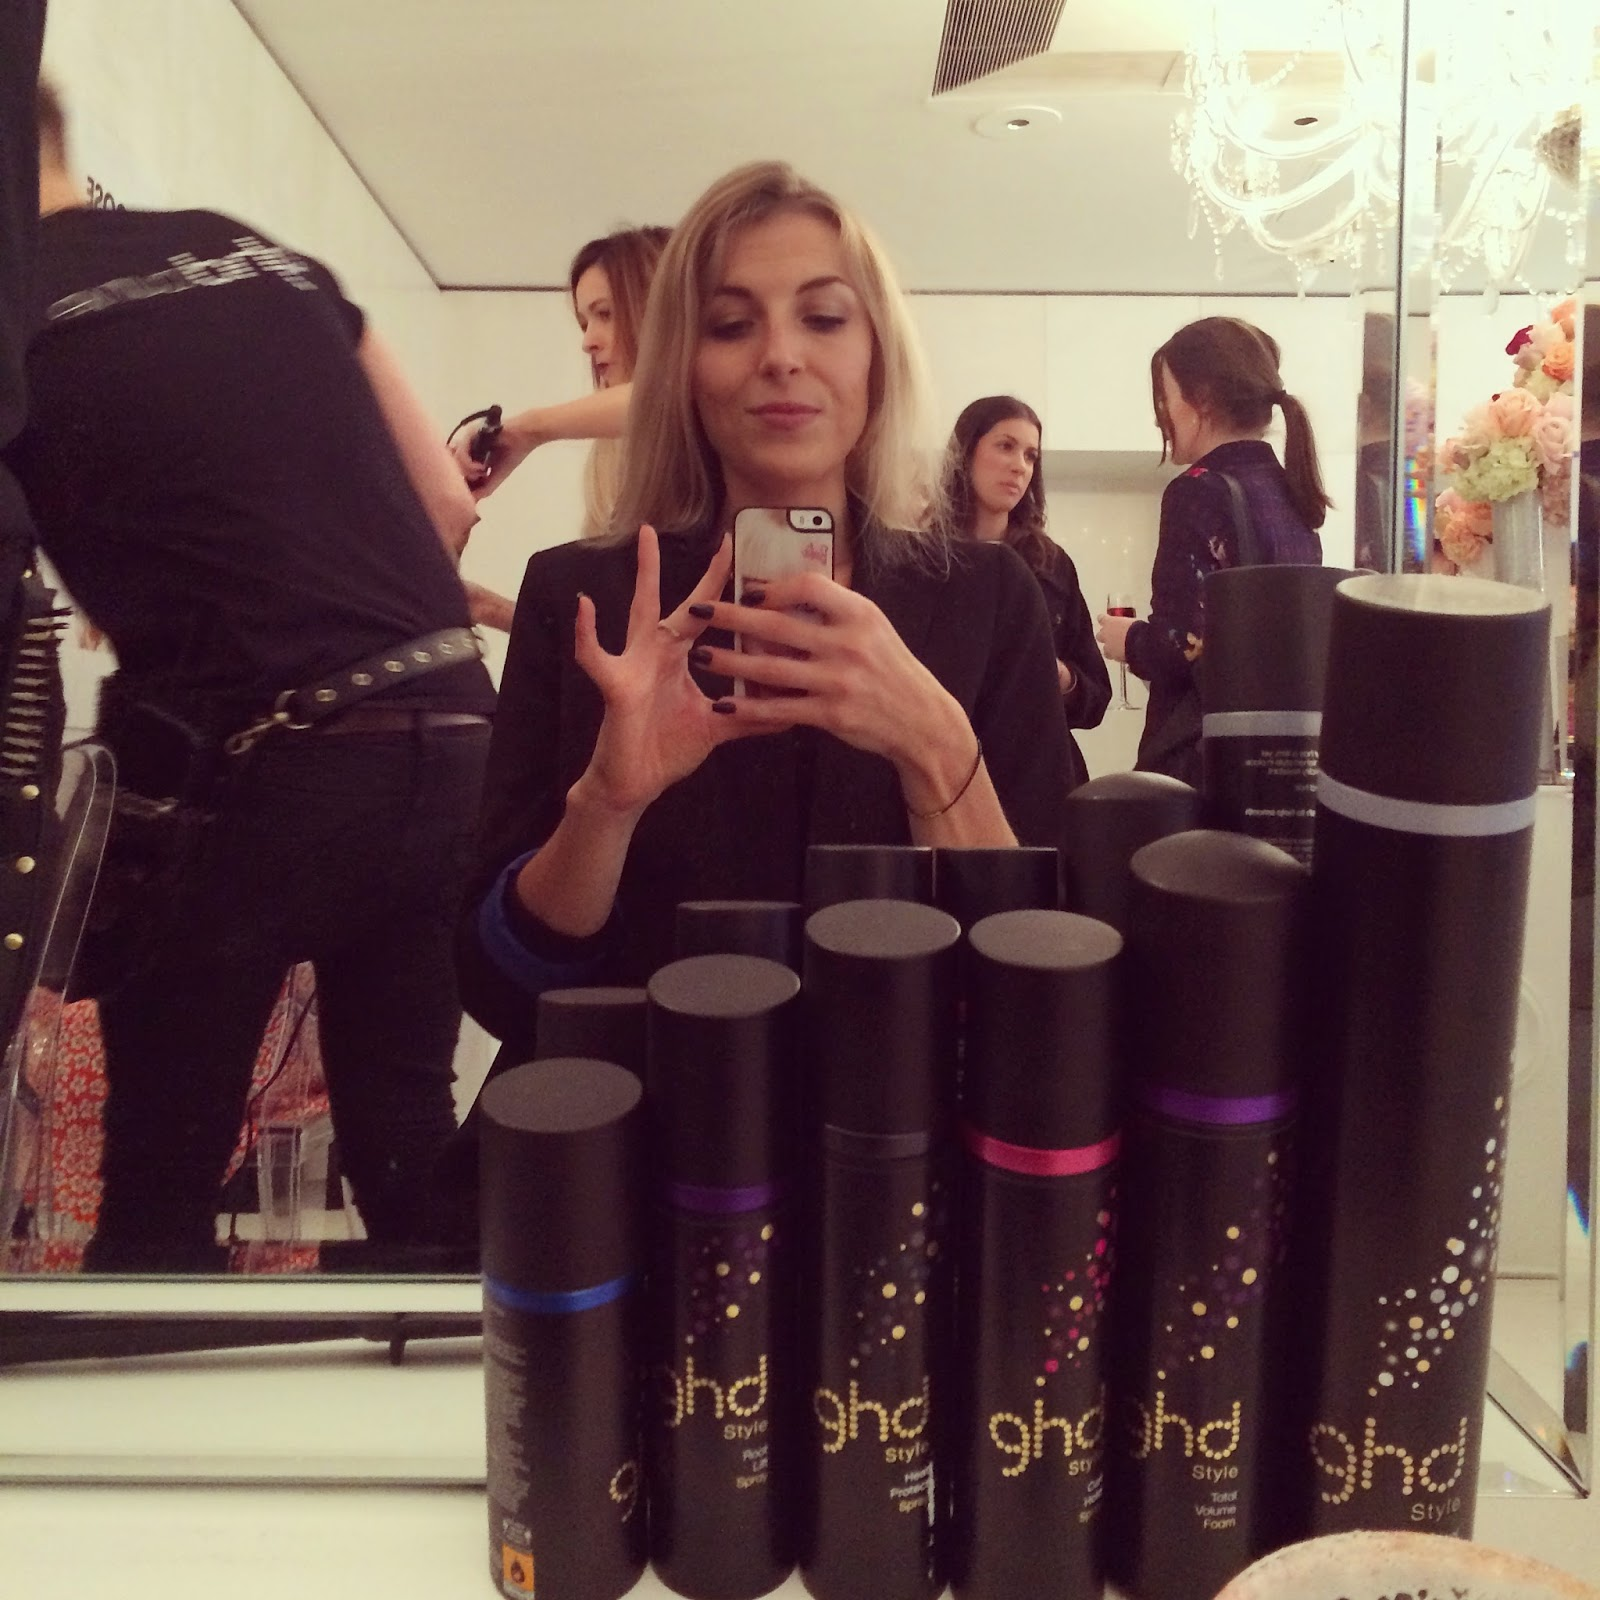 bourjois-ghd-curve-london-event-autumn-winter-2014-new-release